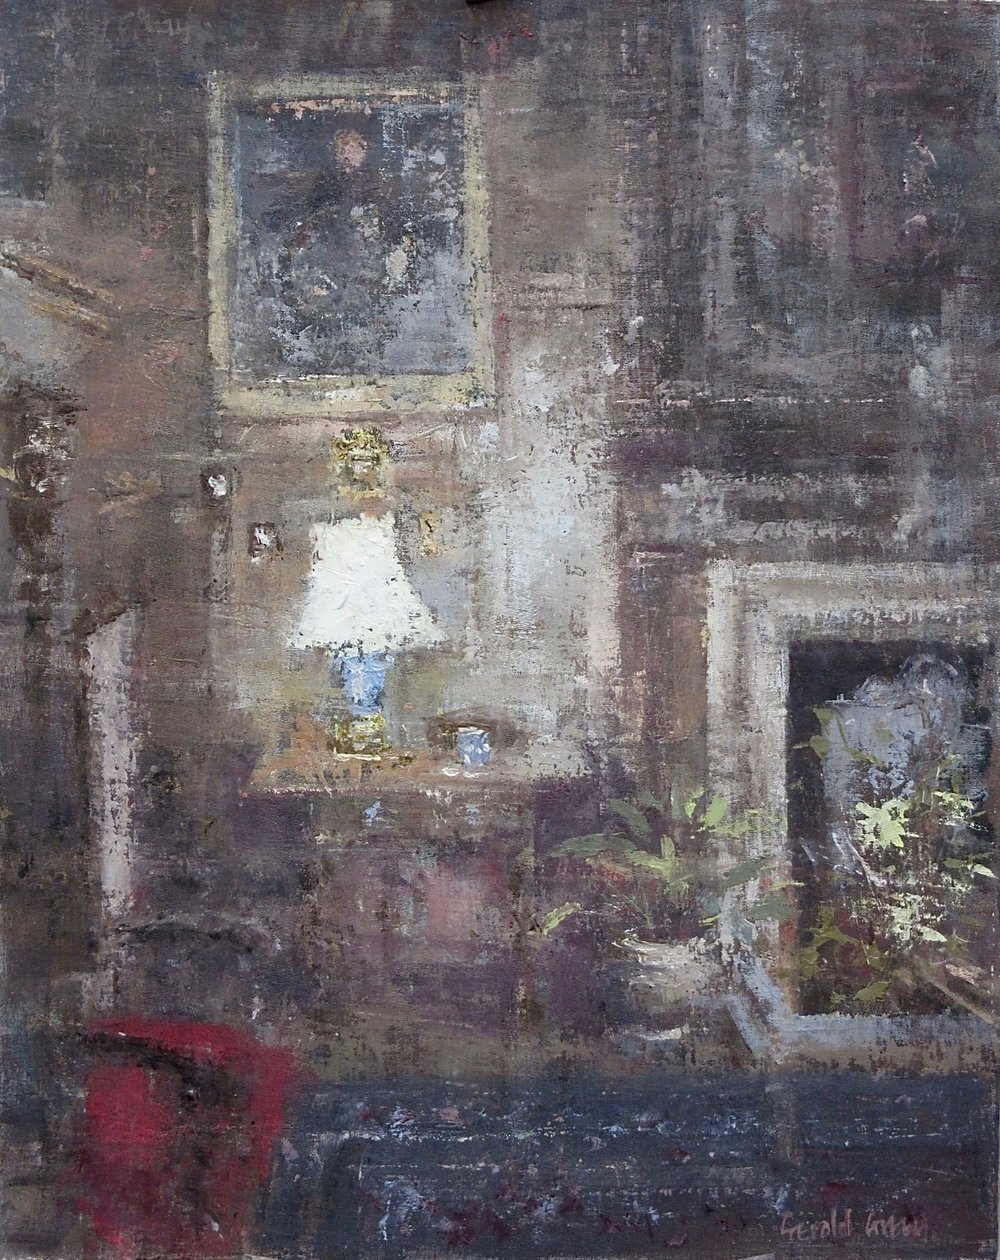 The Blue Table Lamp: 16 x 20 in: £1750